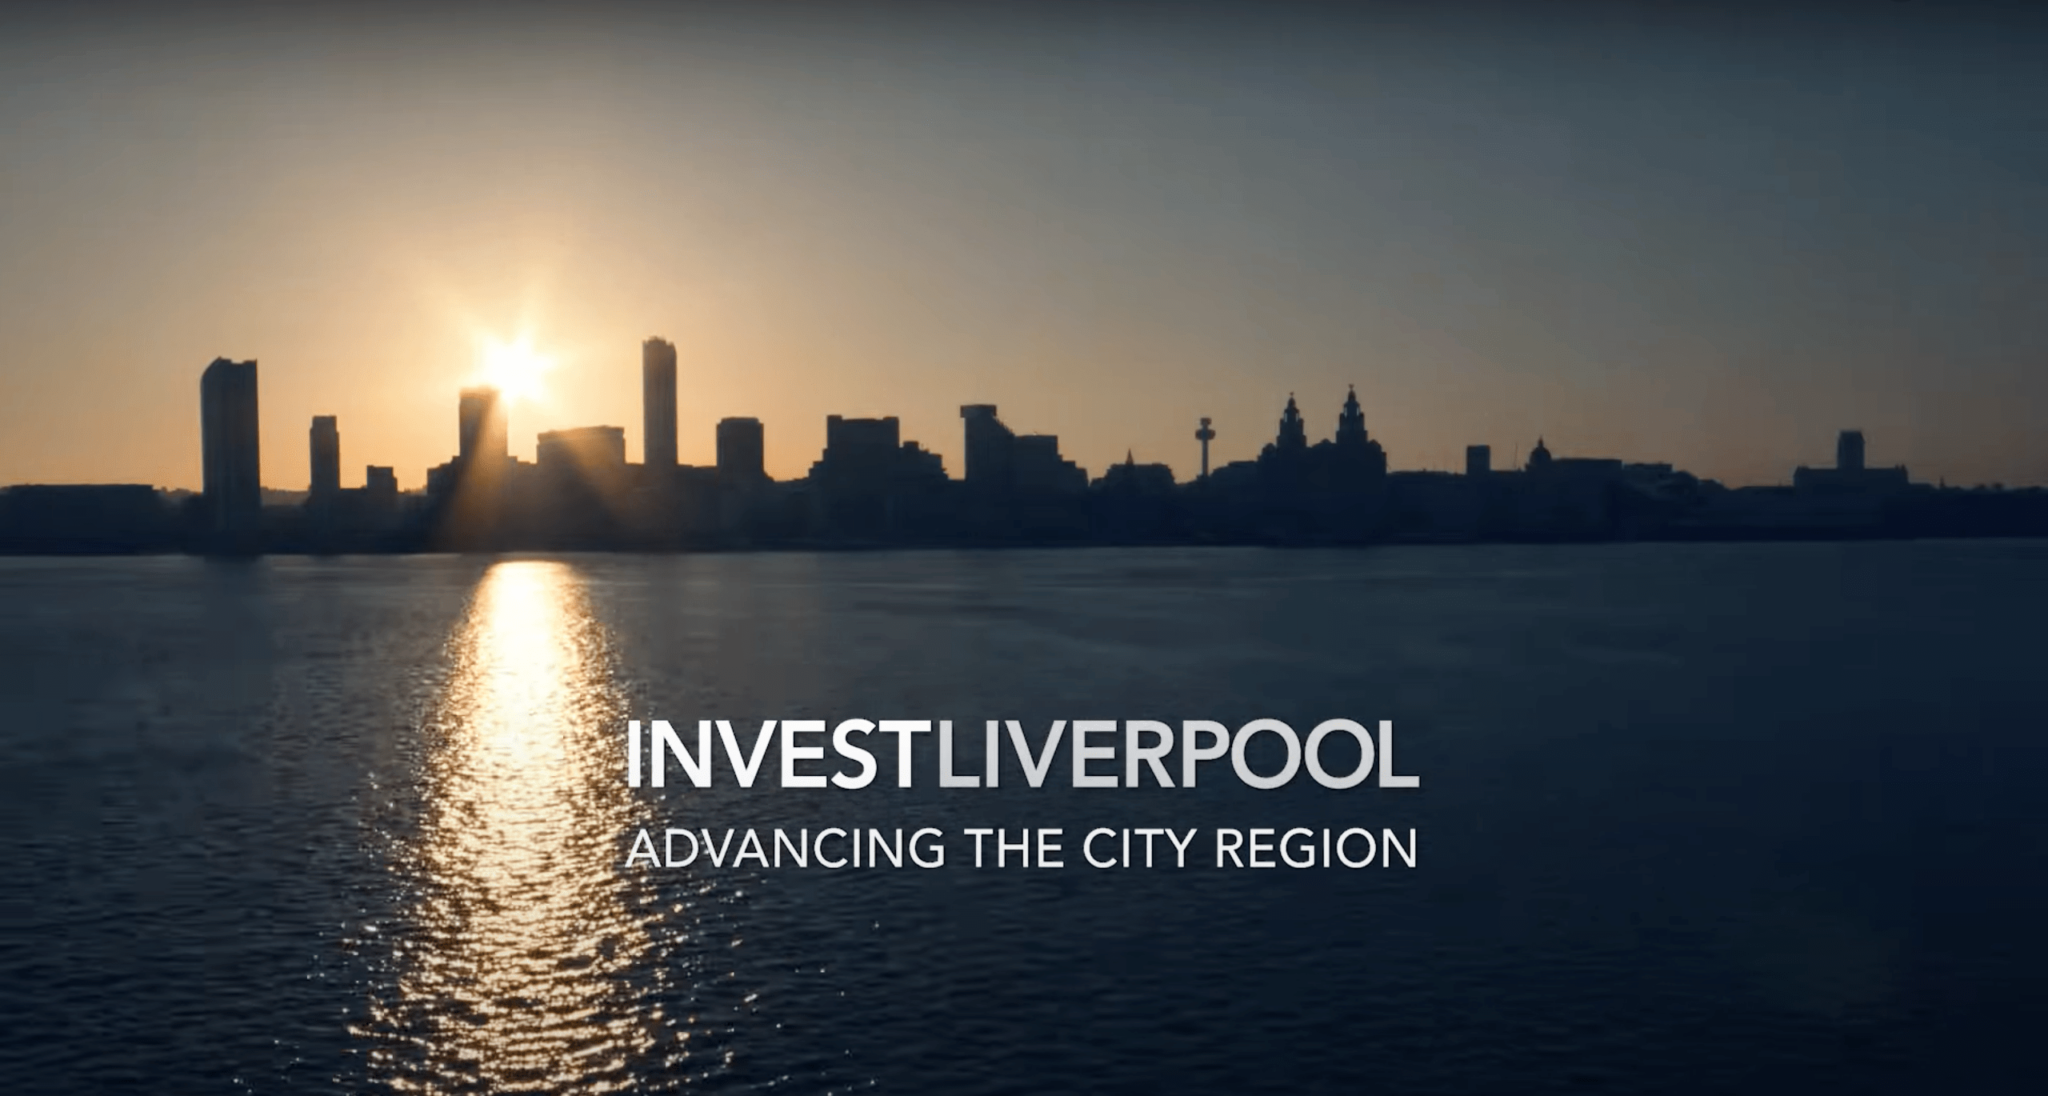 Invest Liverpool: We are Liverpool